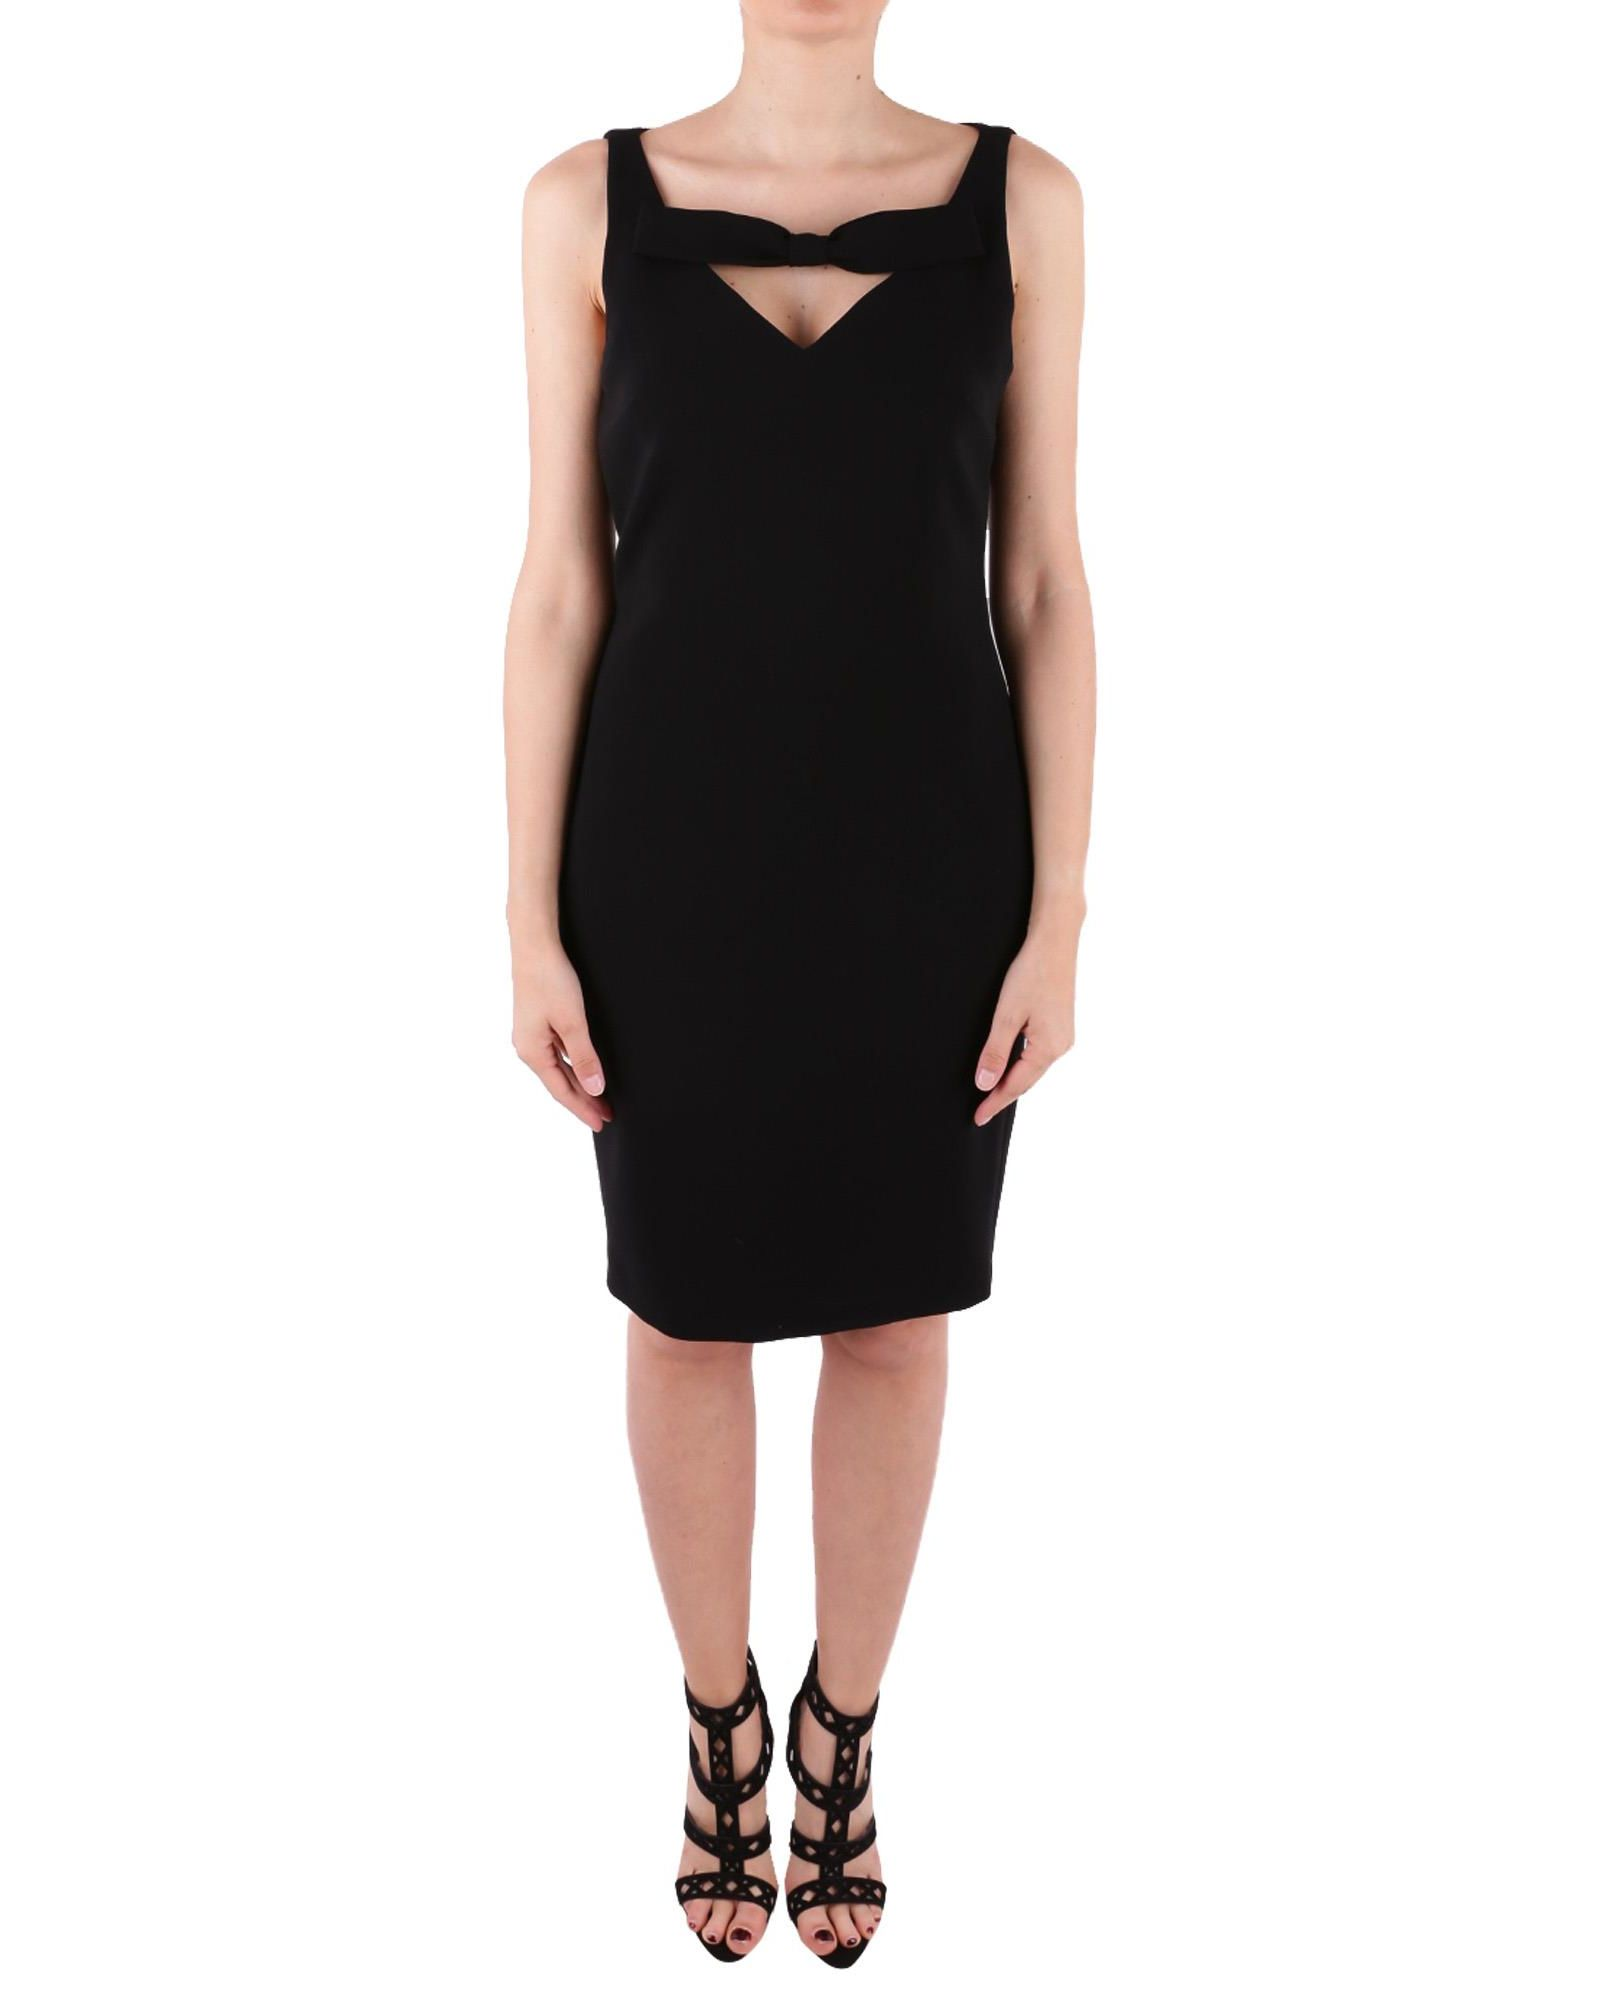 BOUTIQUE MOSCHINO CREPE BODYCON DRESS WITH BOW